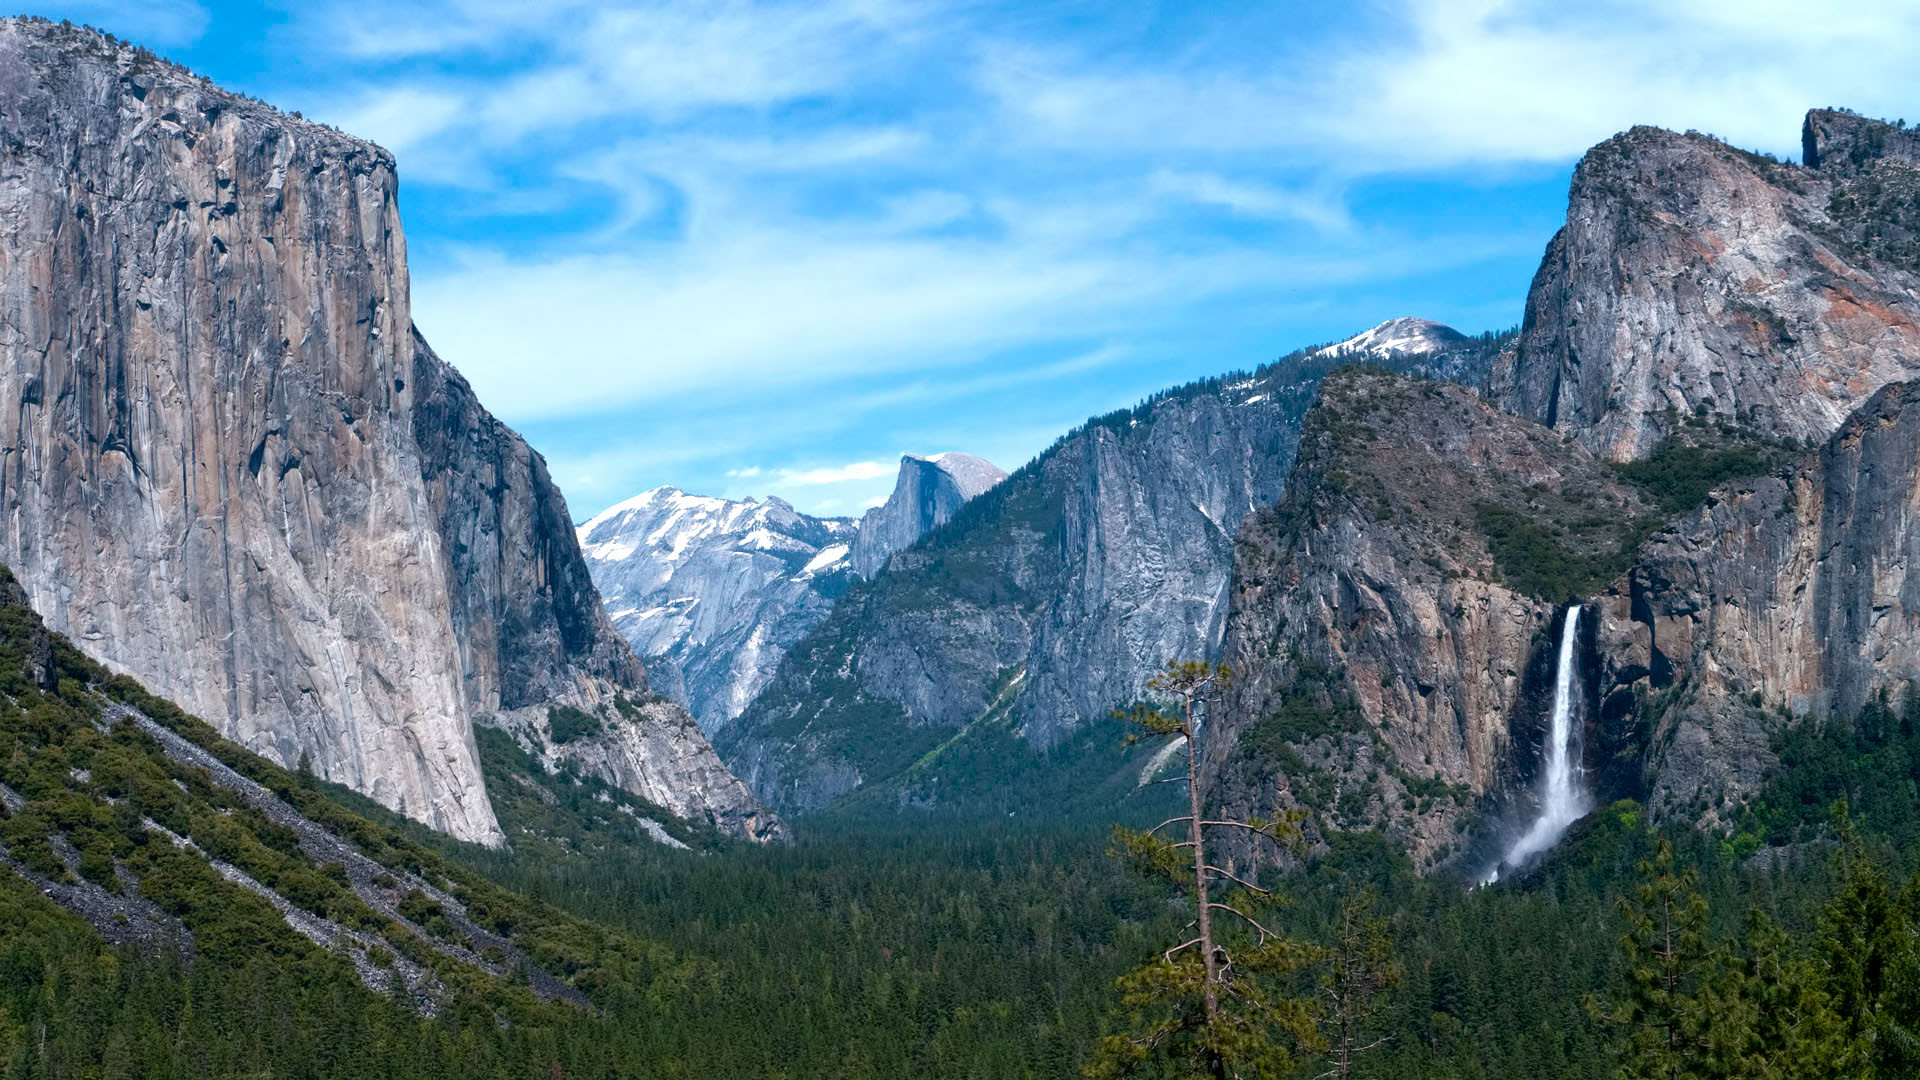 Yosemite screensavers and wallpaper 41 images - Yosemite national park hd wallpaper ...